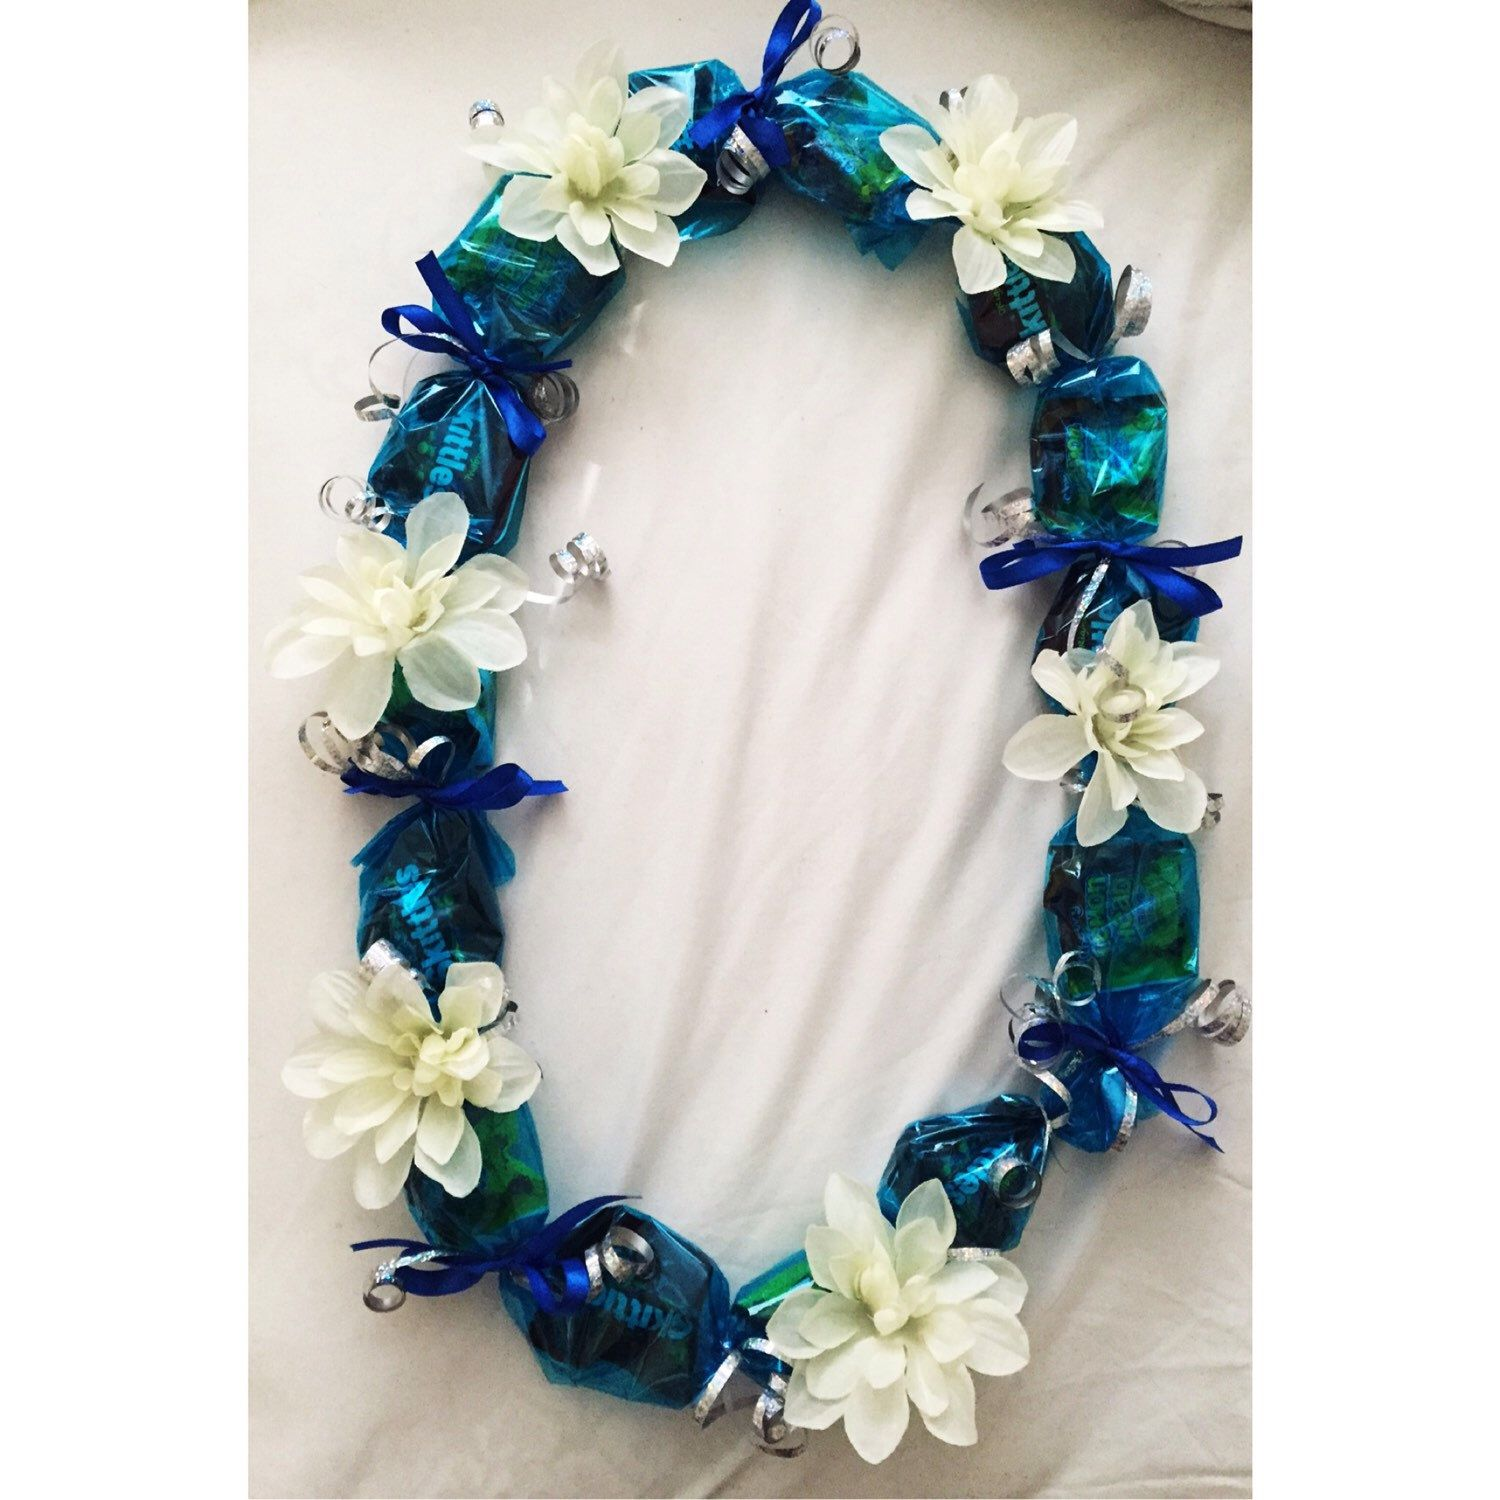 Pin by Melissa Dodds on Fantastic ideas | Graduation leis ...